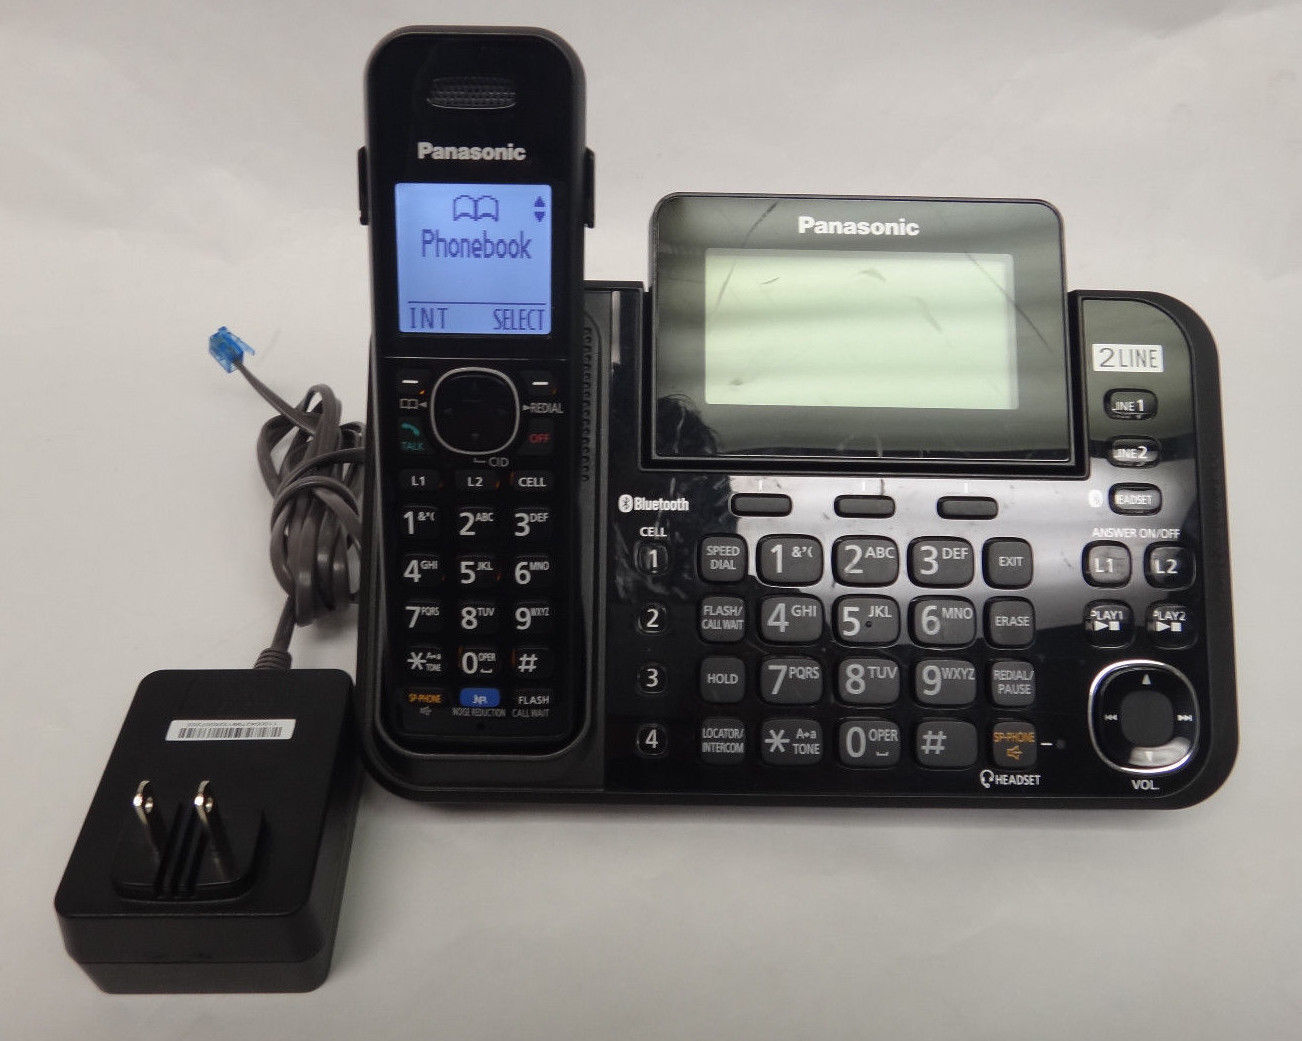 Panasonic Kx-tg9541 2 Line Operation 1 Handset Link2cell DECT 6.0 Plus |  eBay